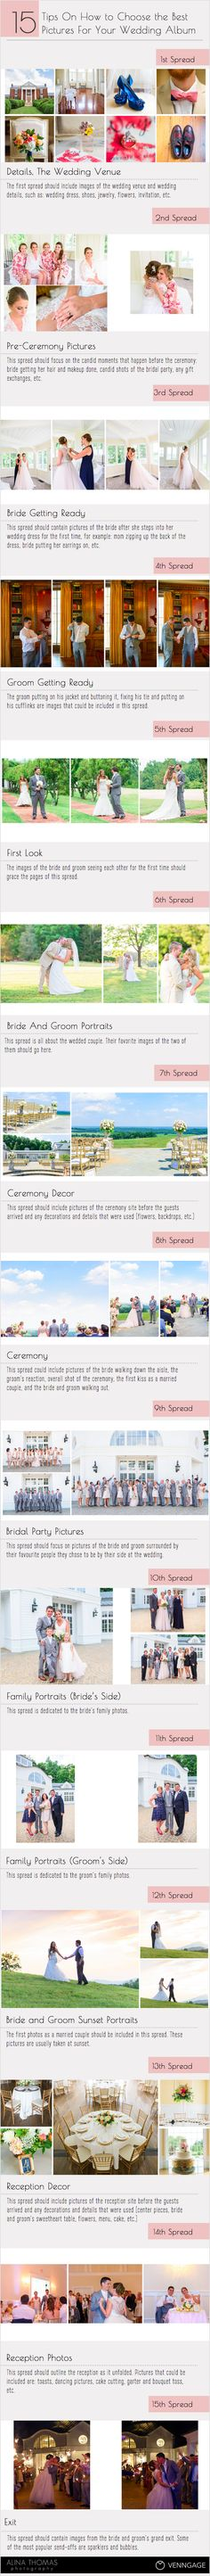 How to choose the perfect pictures for your wedding album. Wedding album infographic for photographers by Alina Thomas Photography. www.alinathomas.com